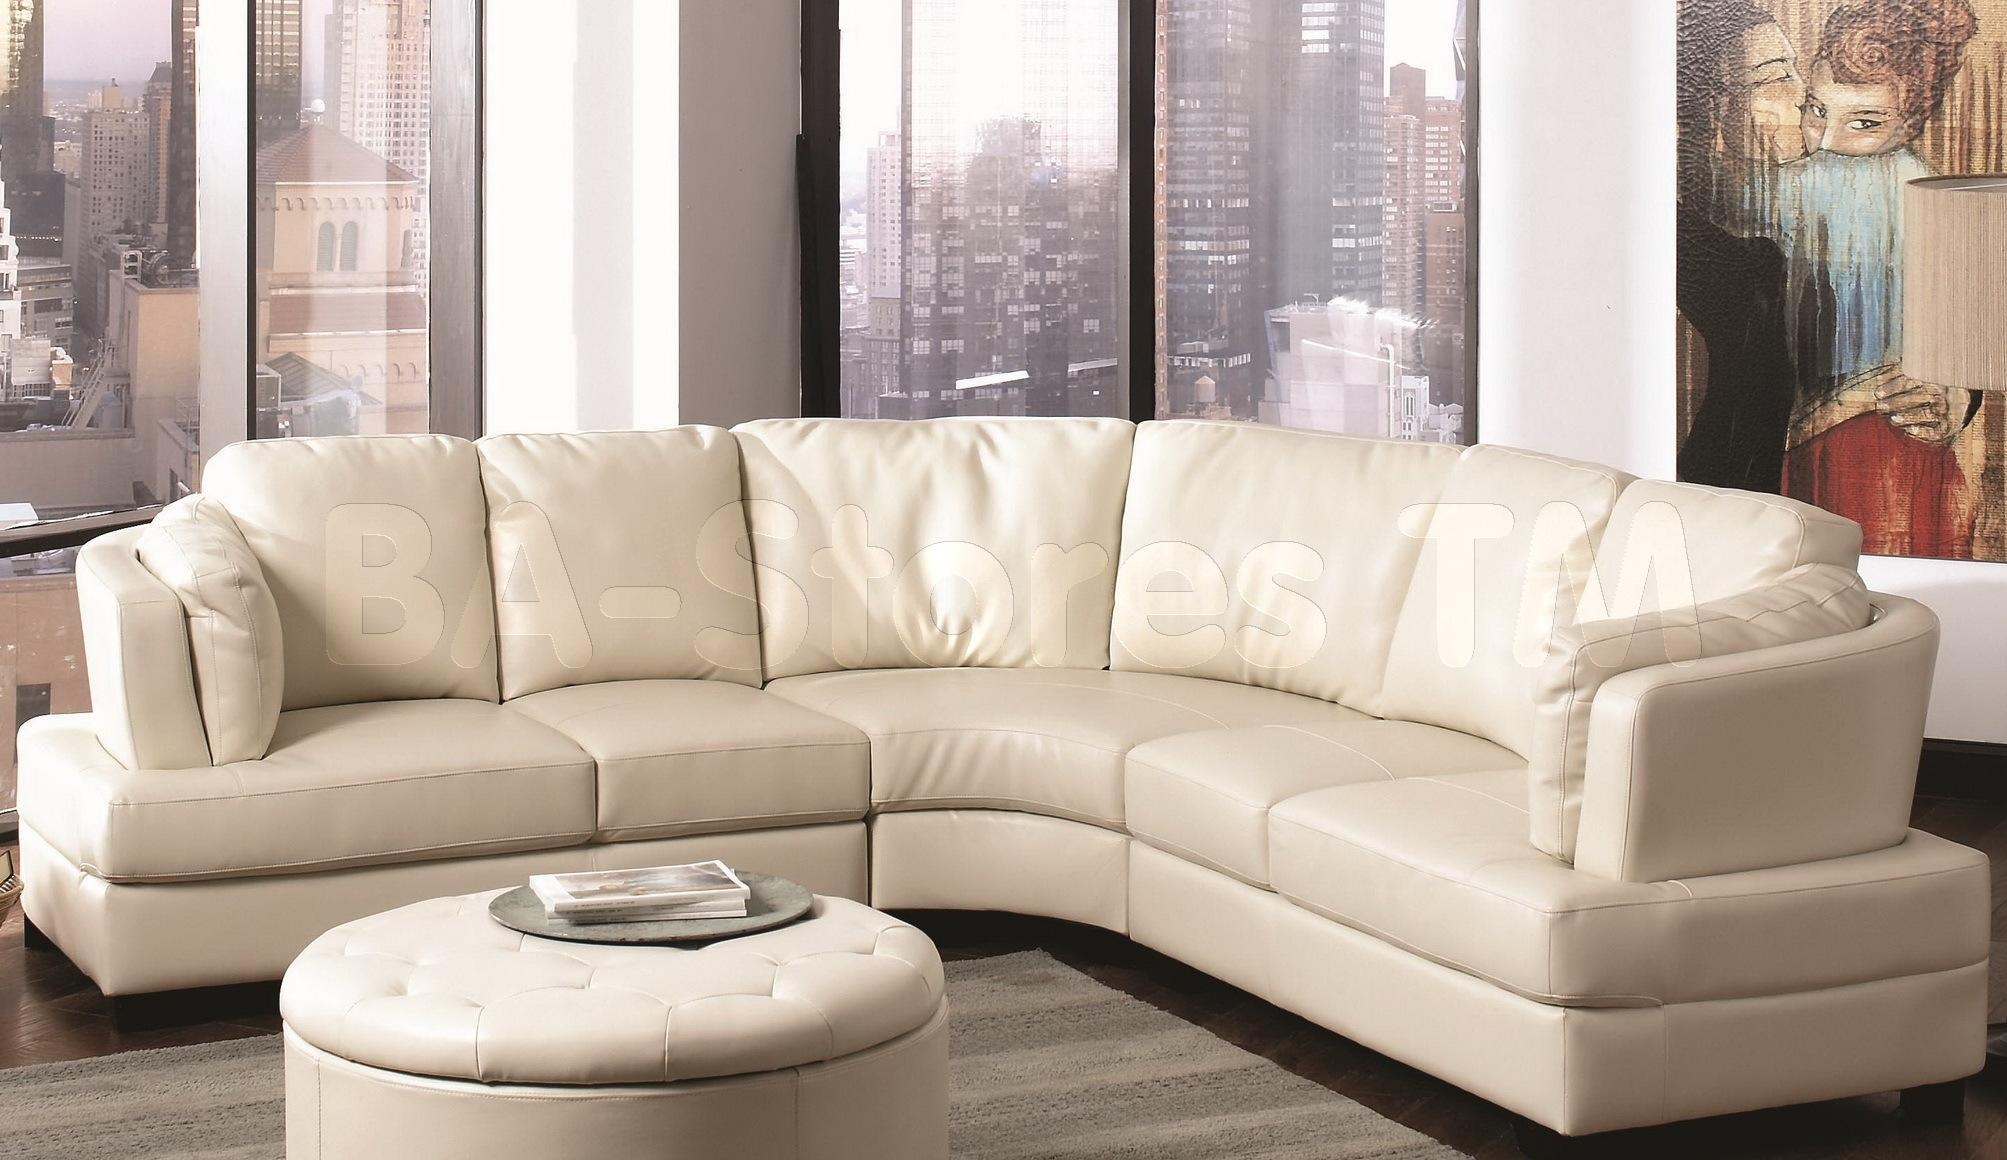 Curved Sectional Sofas At Macys | Tehranmix Decoration Within Macys Leather Sofas Sectionals (Image 1 of 20)